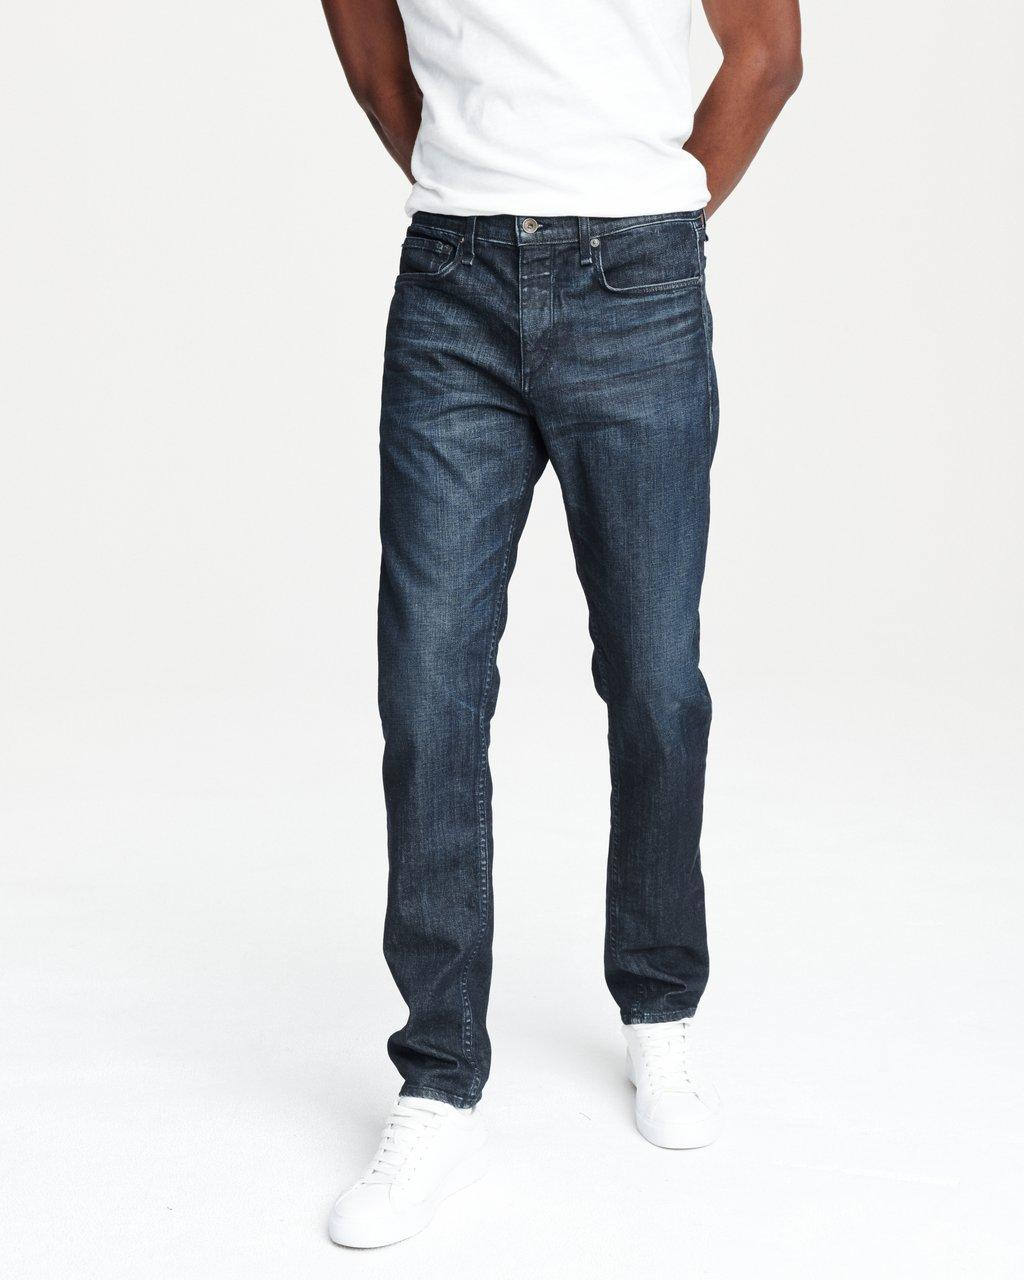 FIT 2 IN CHARLIE - 30 INCH INSEAM AVAILABLE